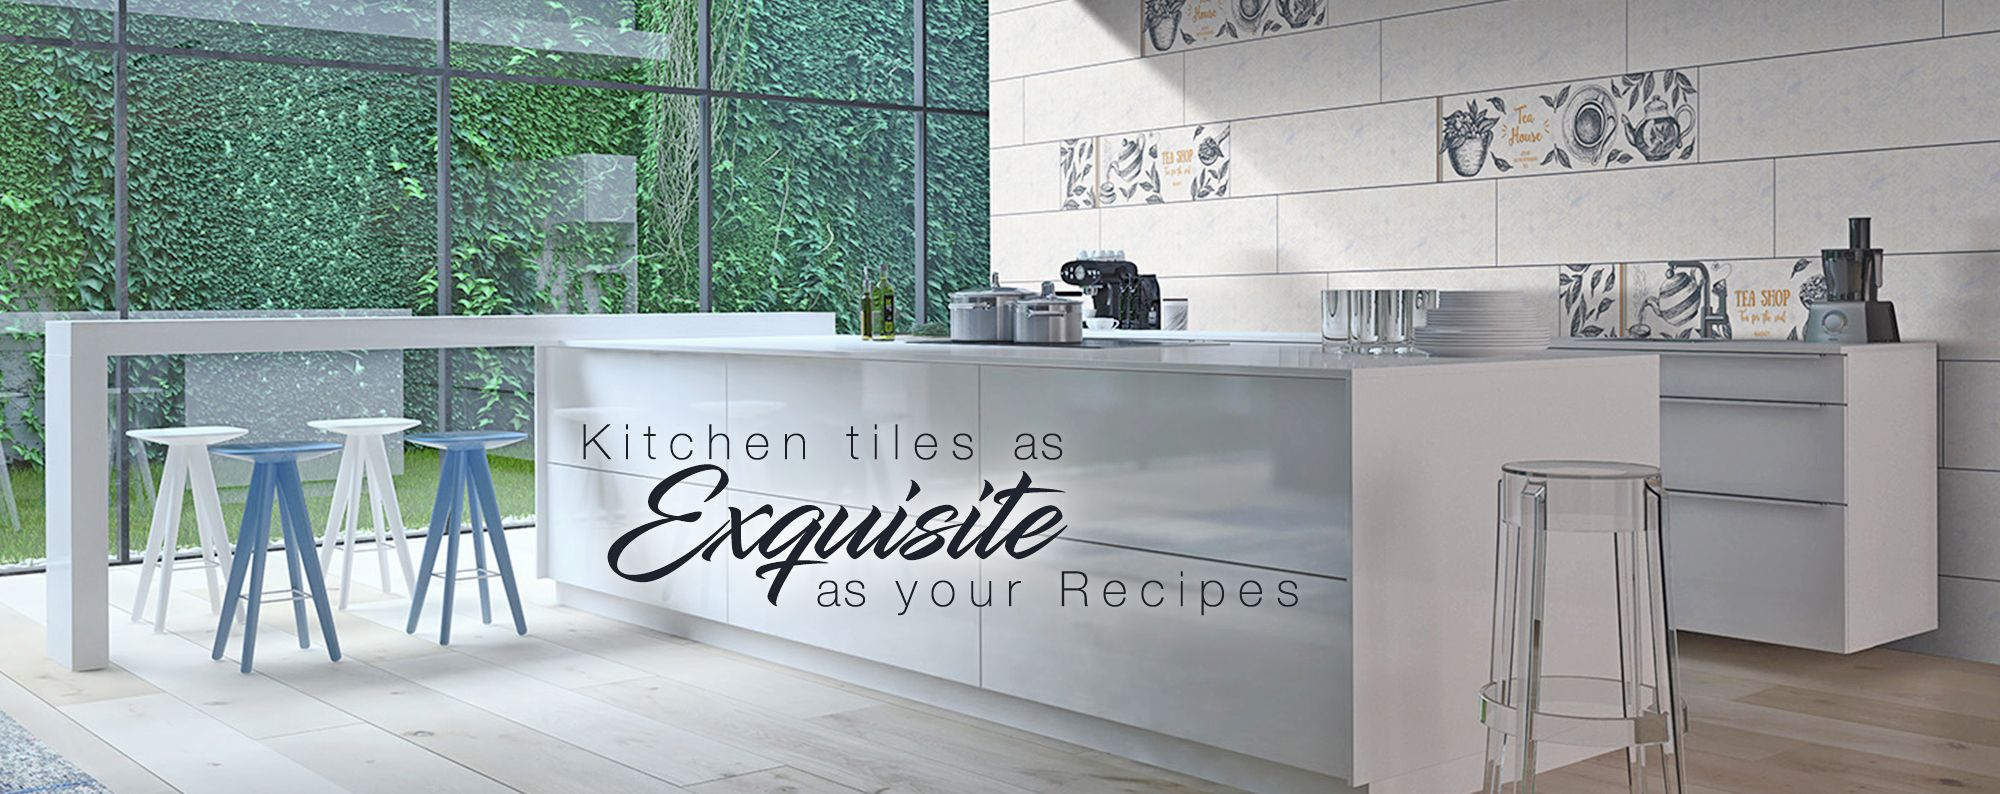 Kitchen Design And Tiles Largest Kitchen Tiles Collection In India Somany Ceramics